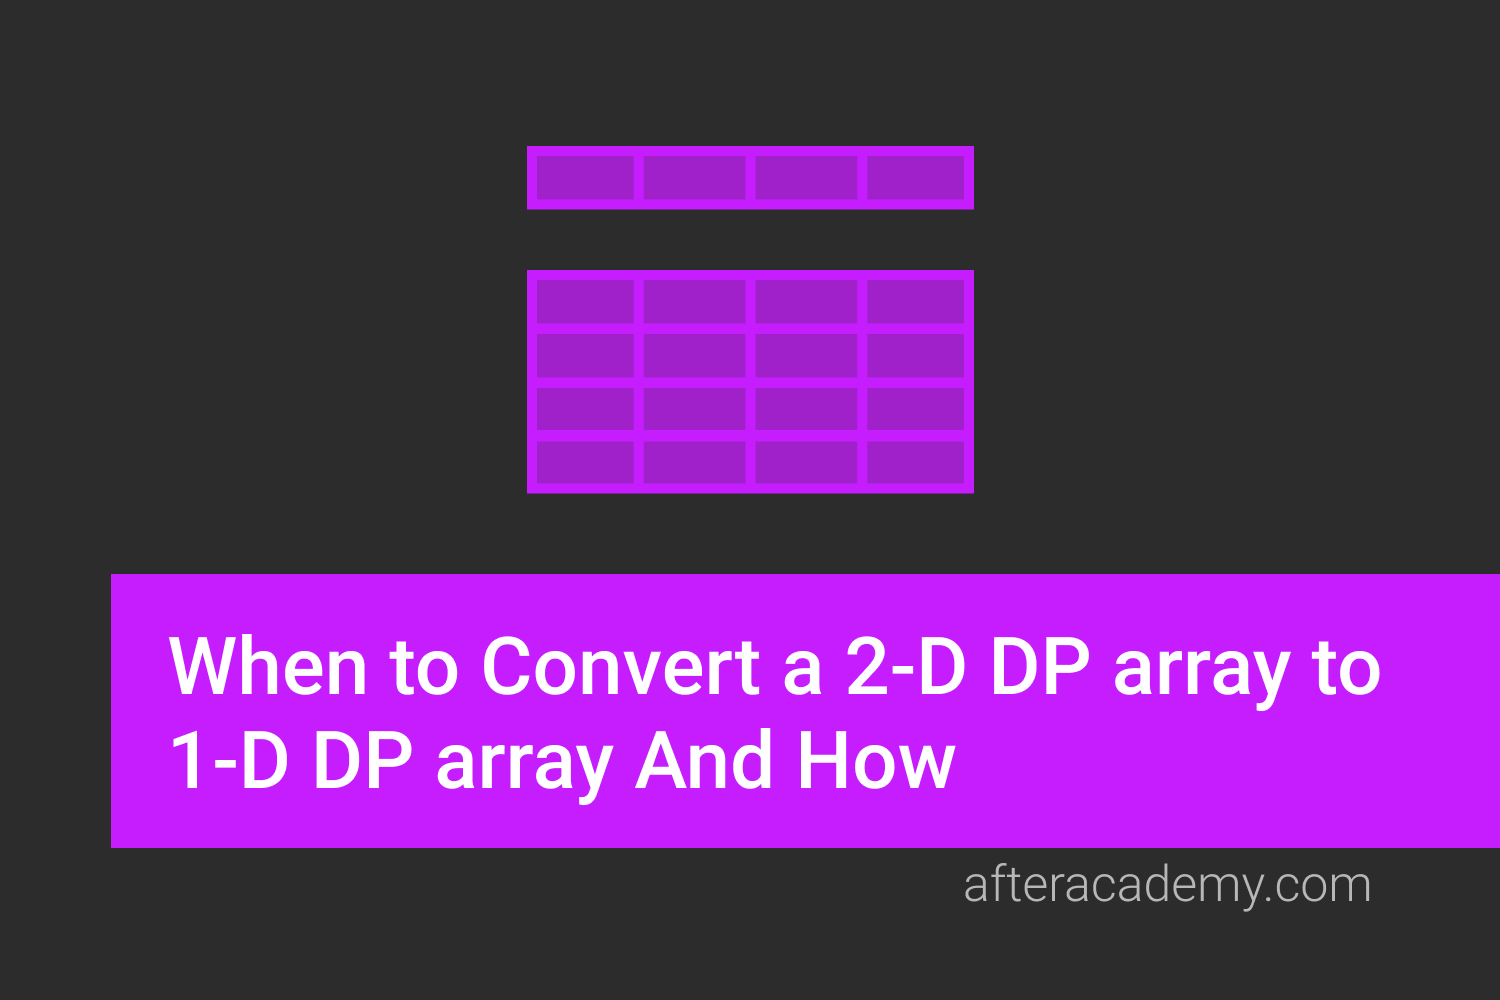 When to Convert a 2-D DP array to 1-D DP array And How?